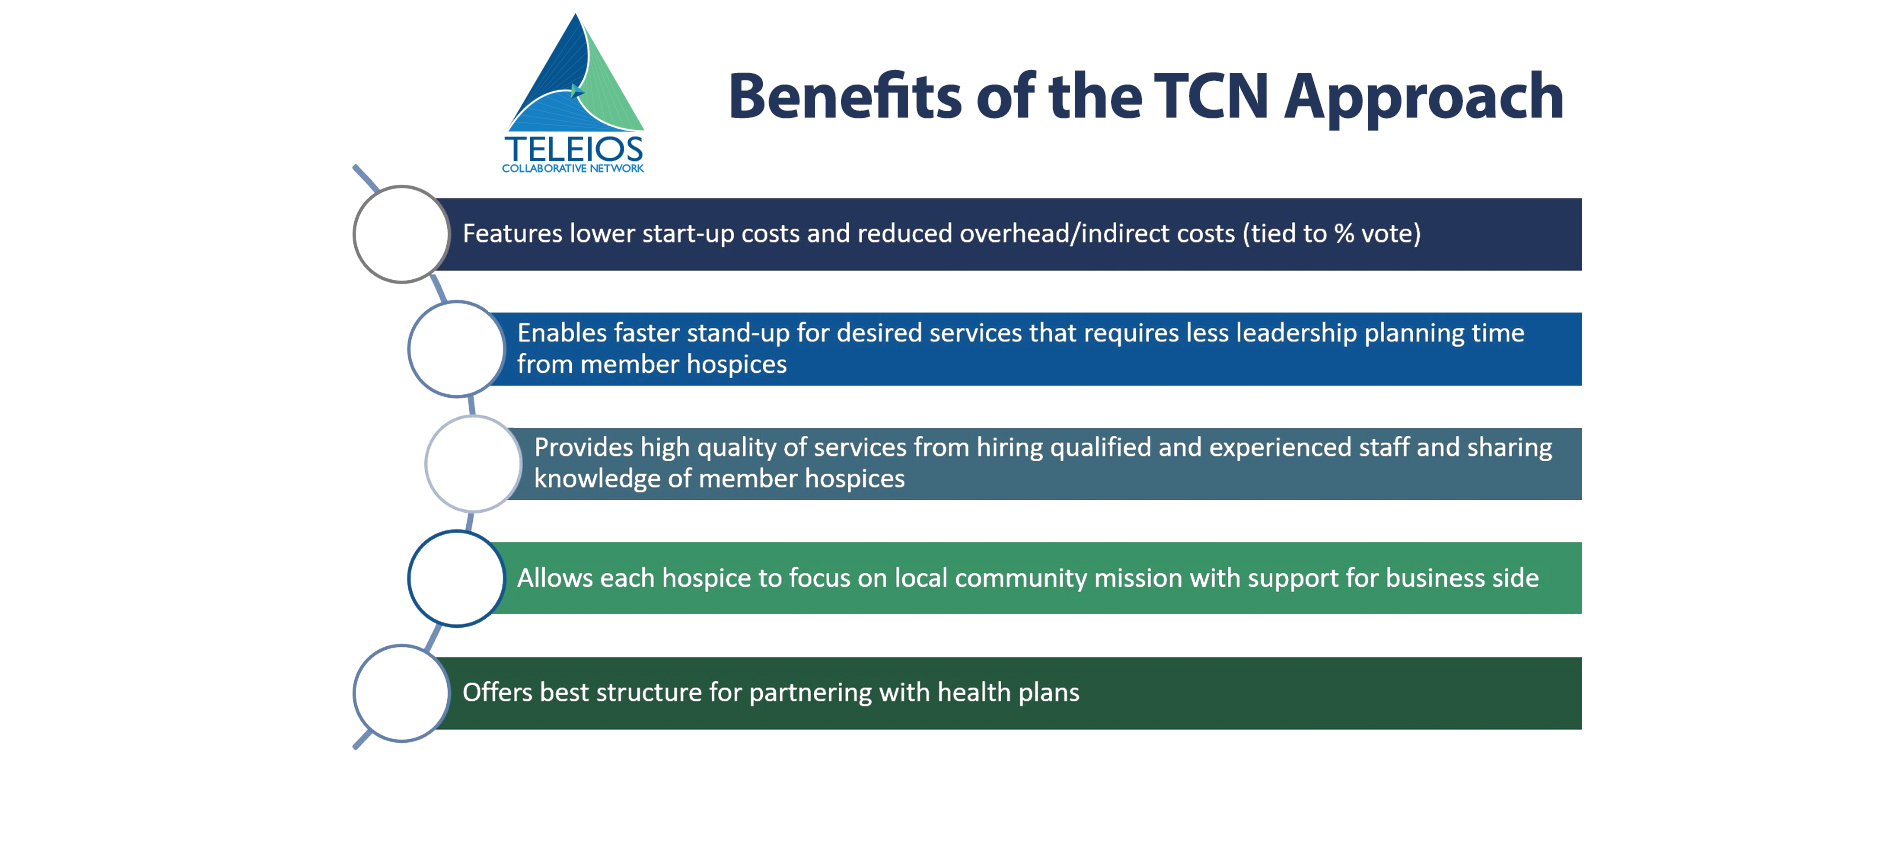 benefits-of-tcn-approach